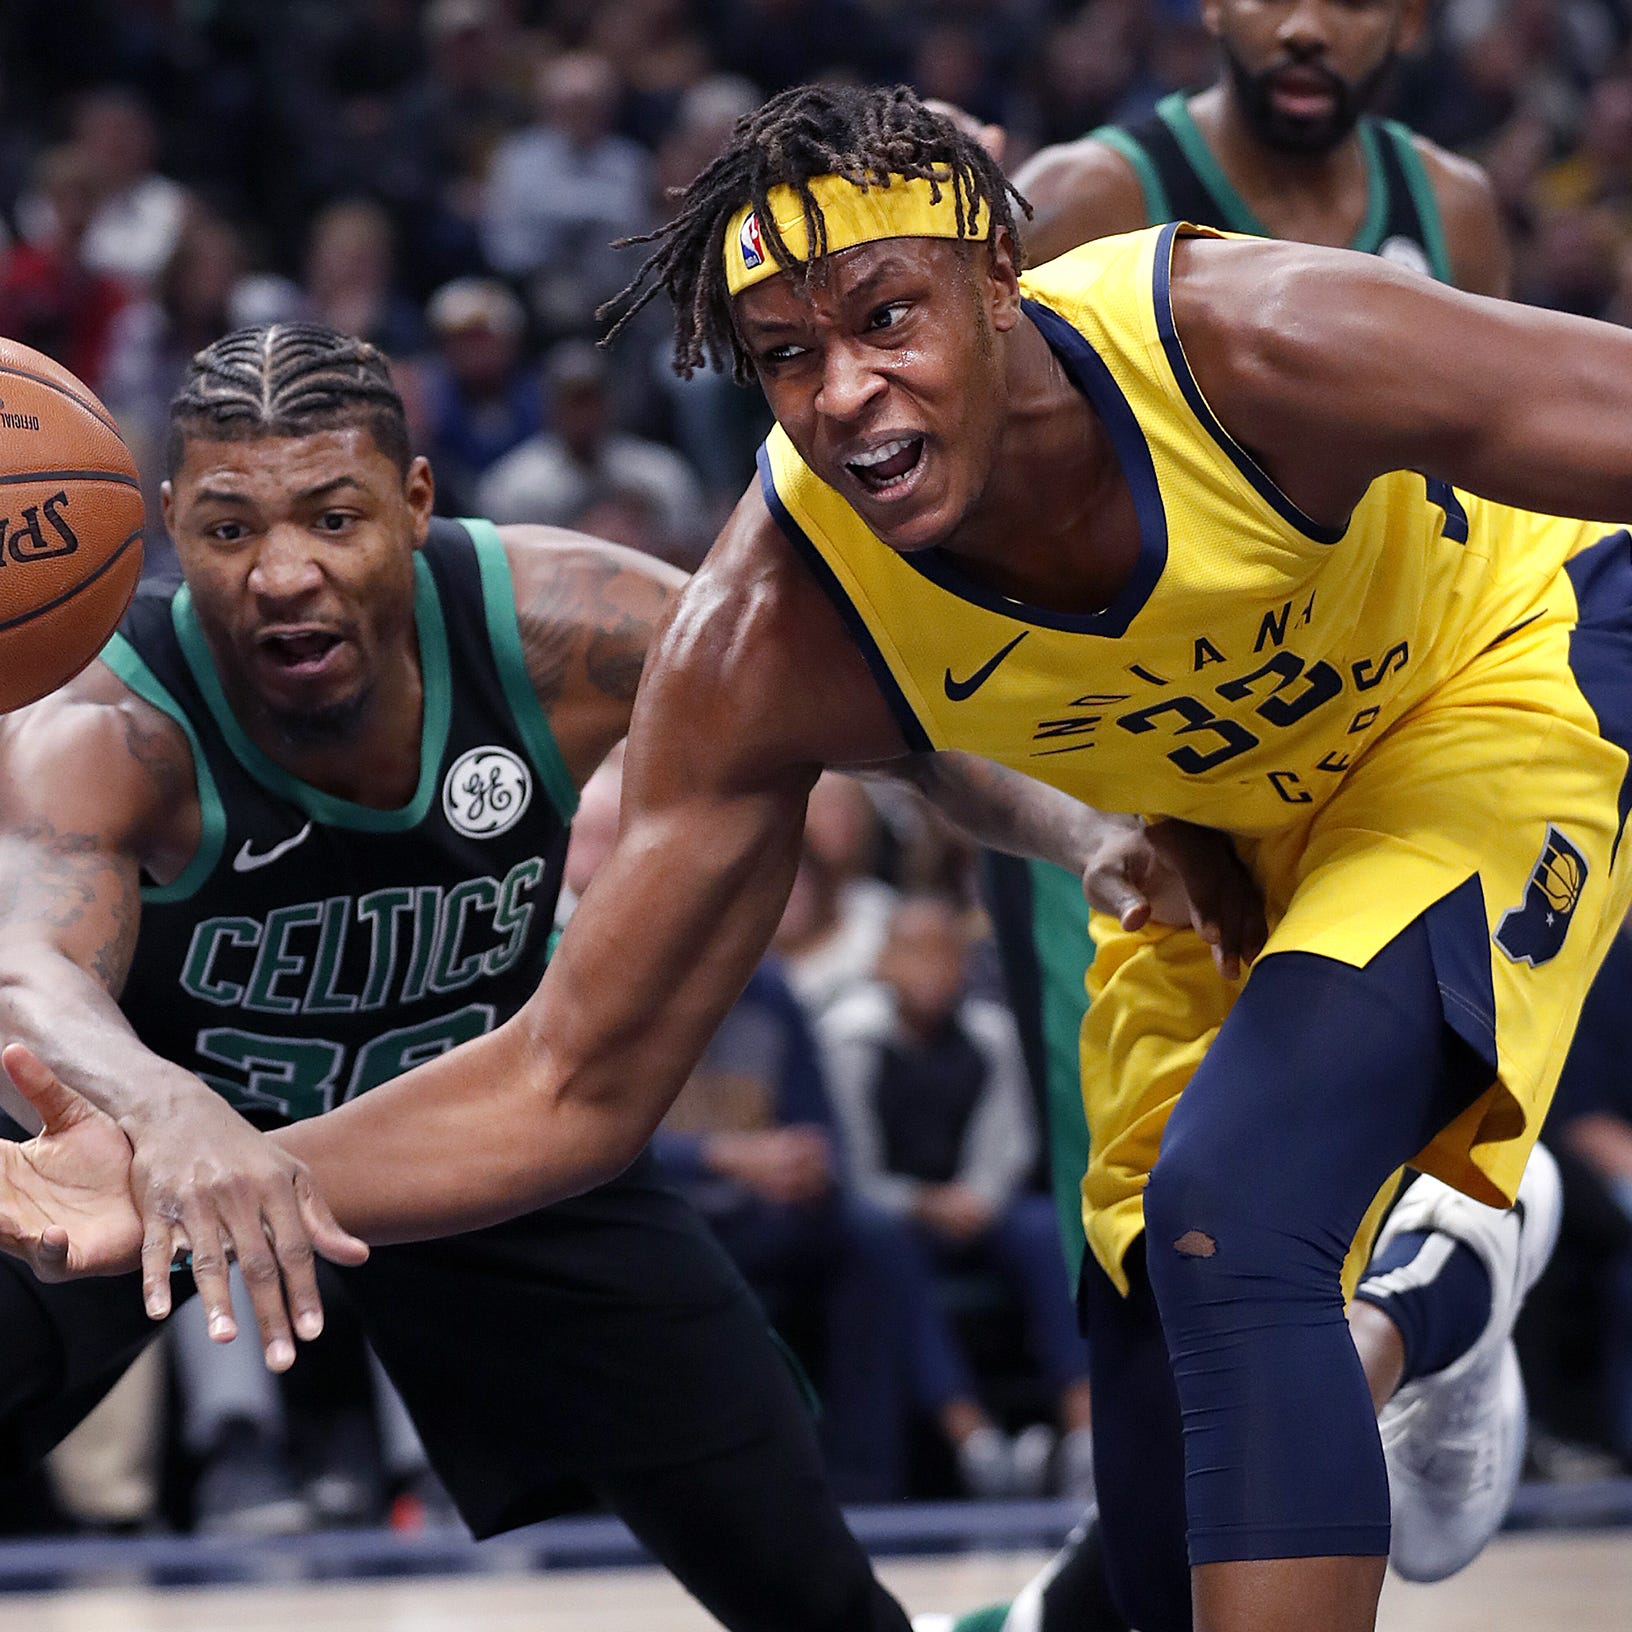 Pacers vs. Celtics: Who has the tiebreakers